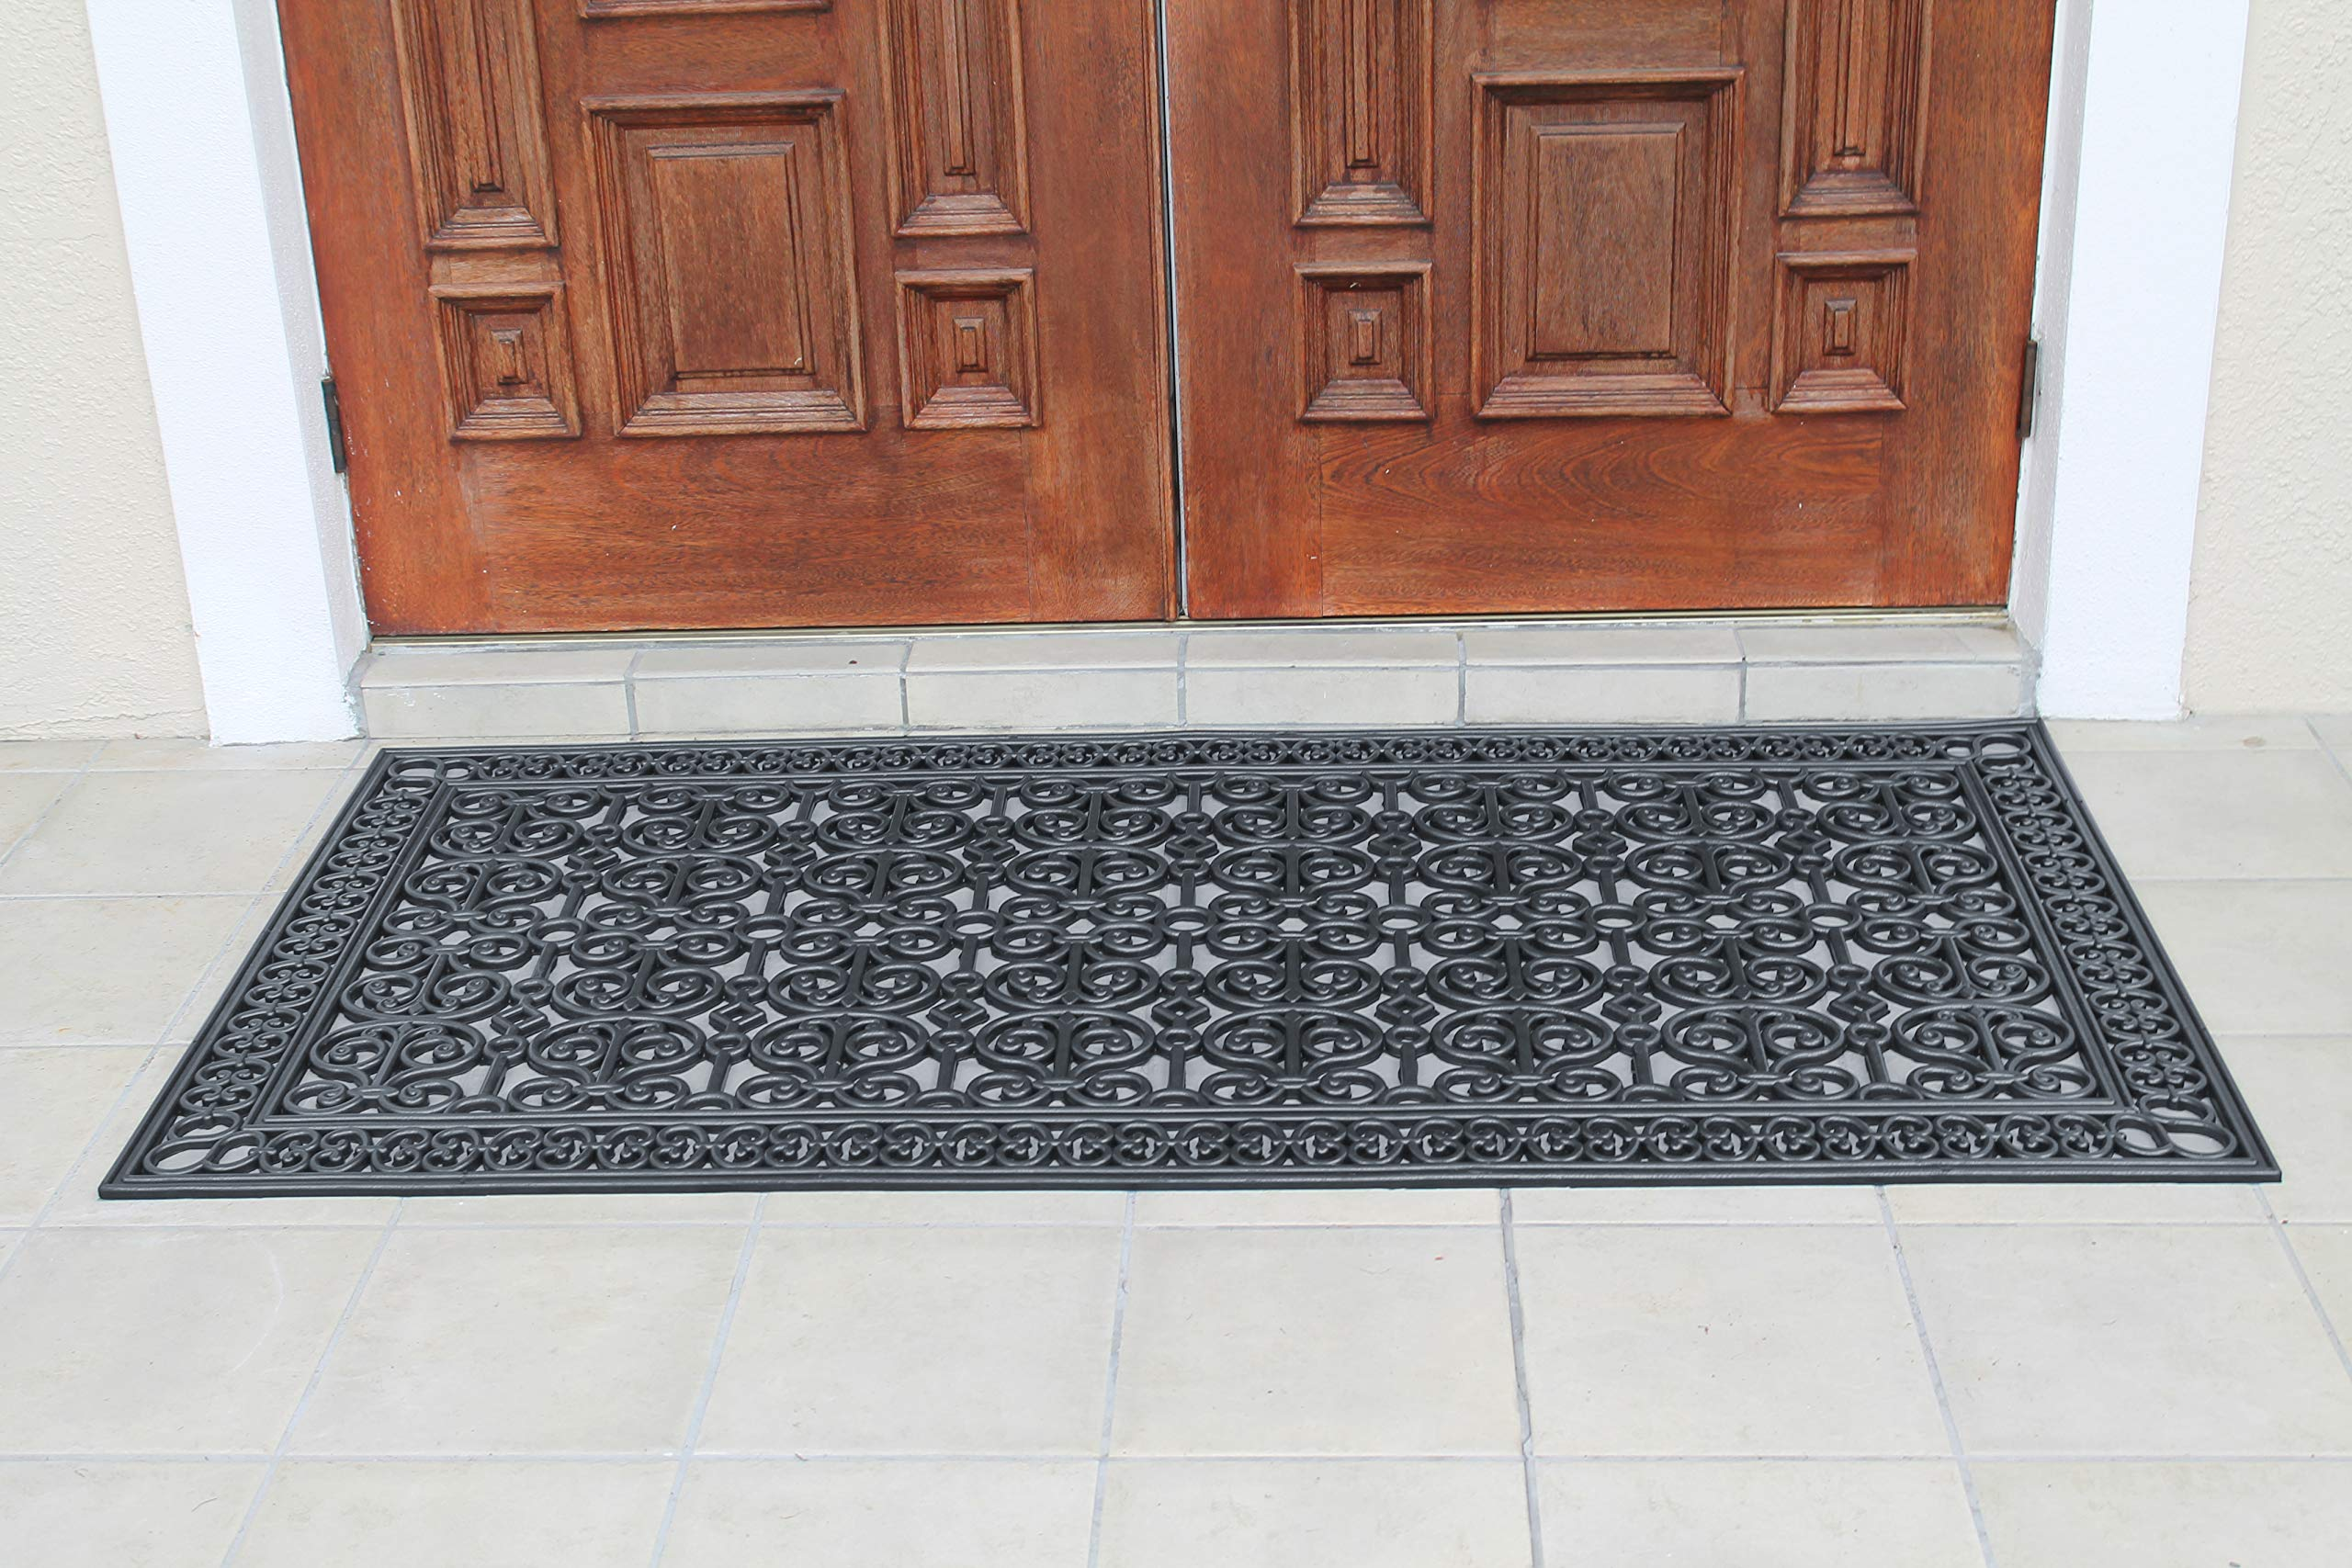 A1 Home Collections A1HCCL68 Doormat A1HC First Impression Rubber Paisley, Beautifully Hand Finished,Thick, 36X72, Black Estate 36'' X 72'' by A1 Home Collections (Image #4)